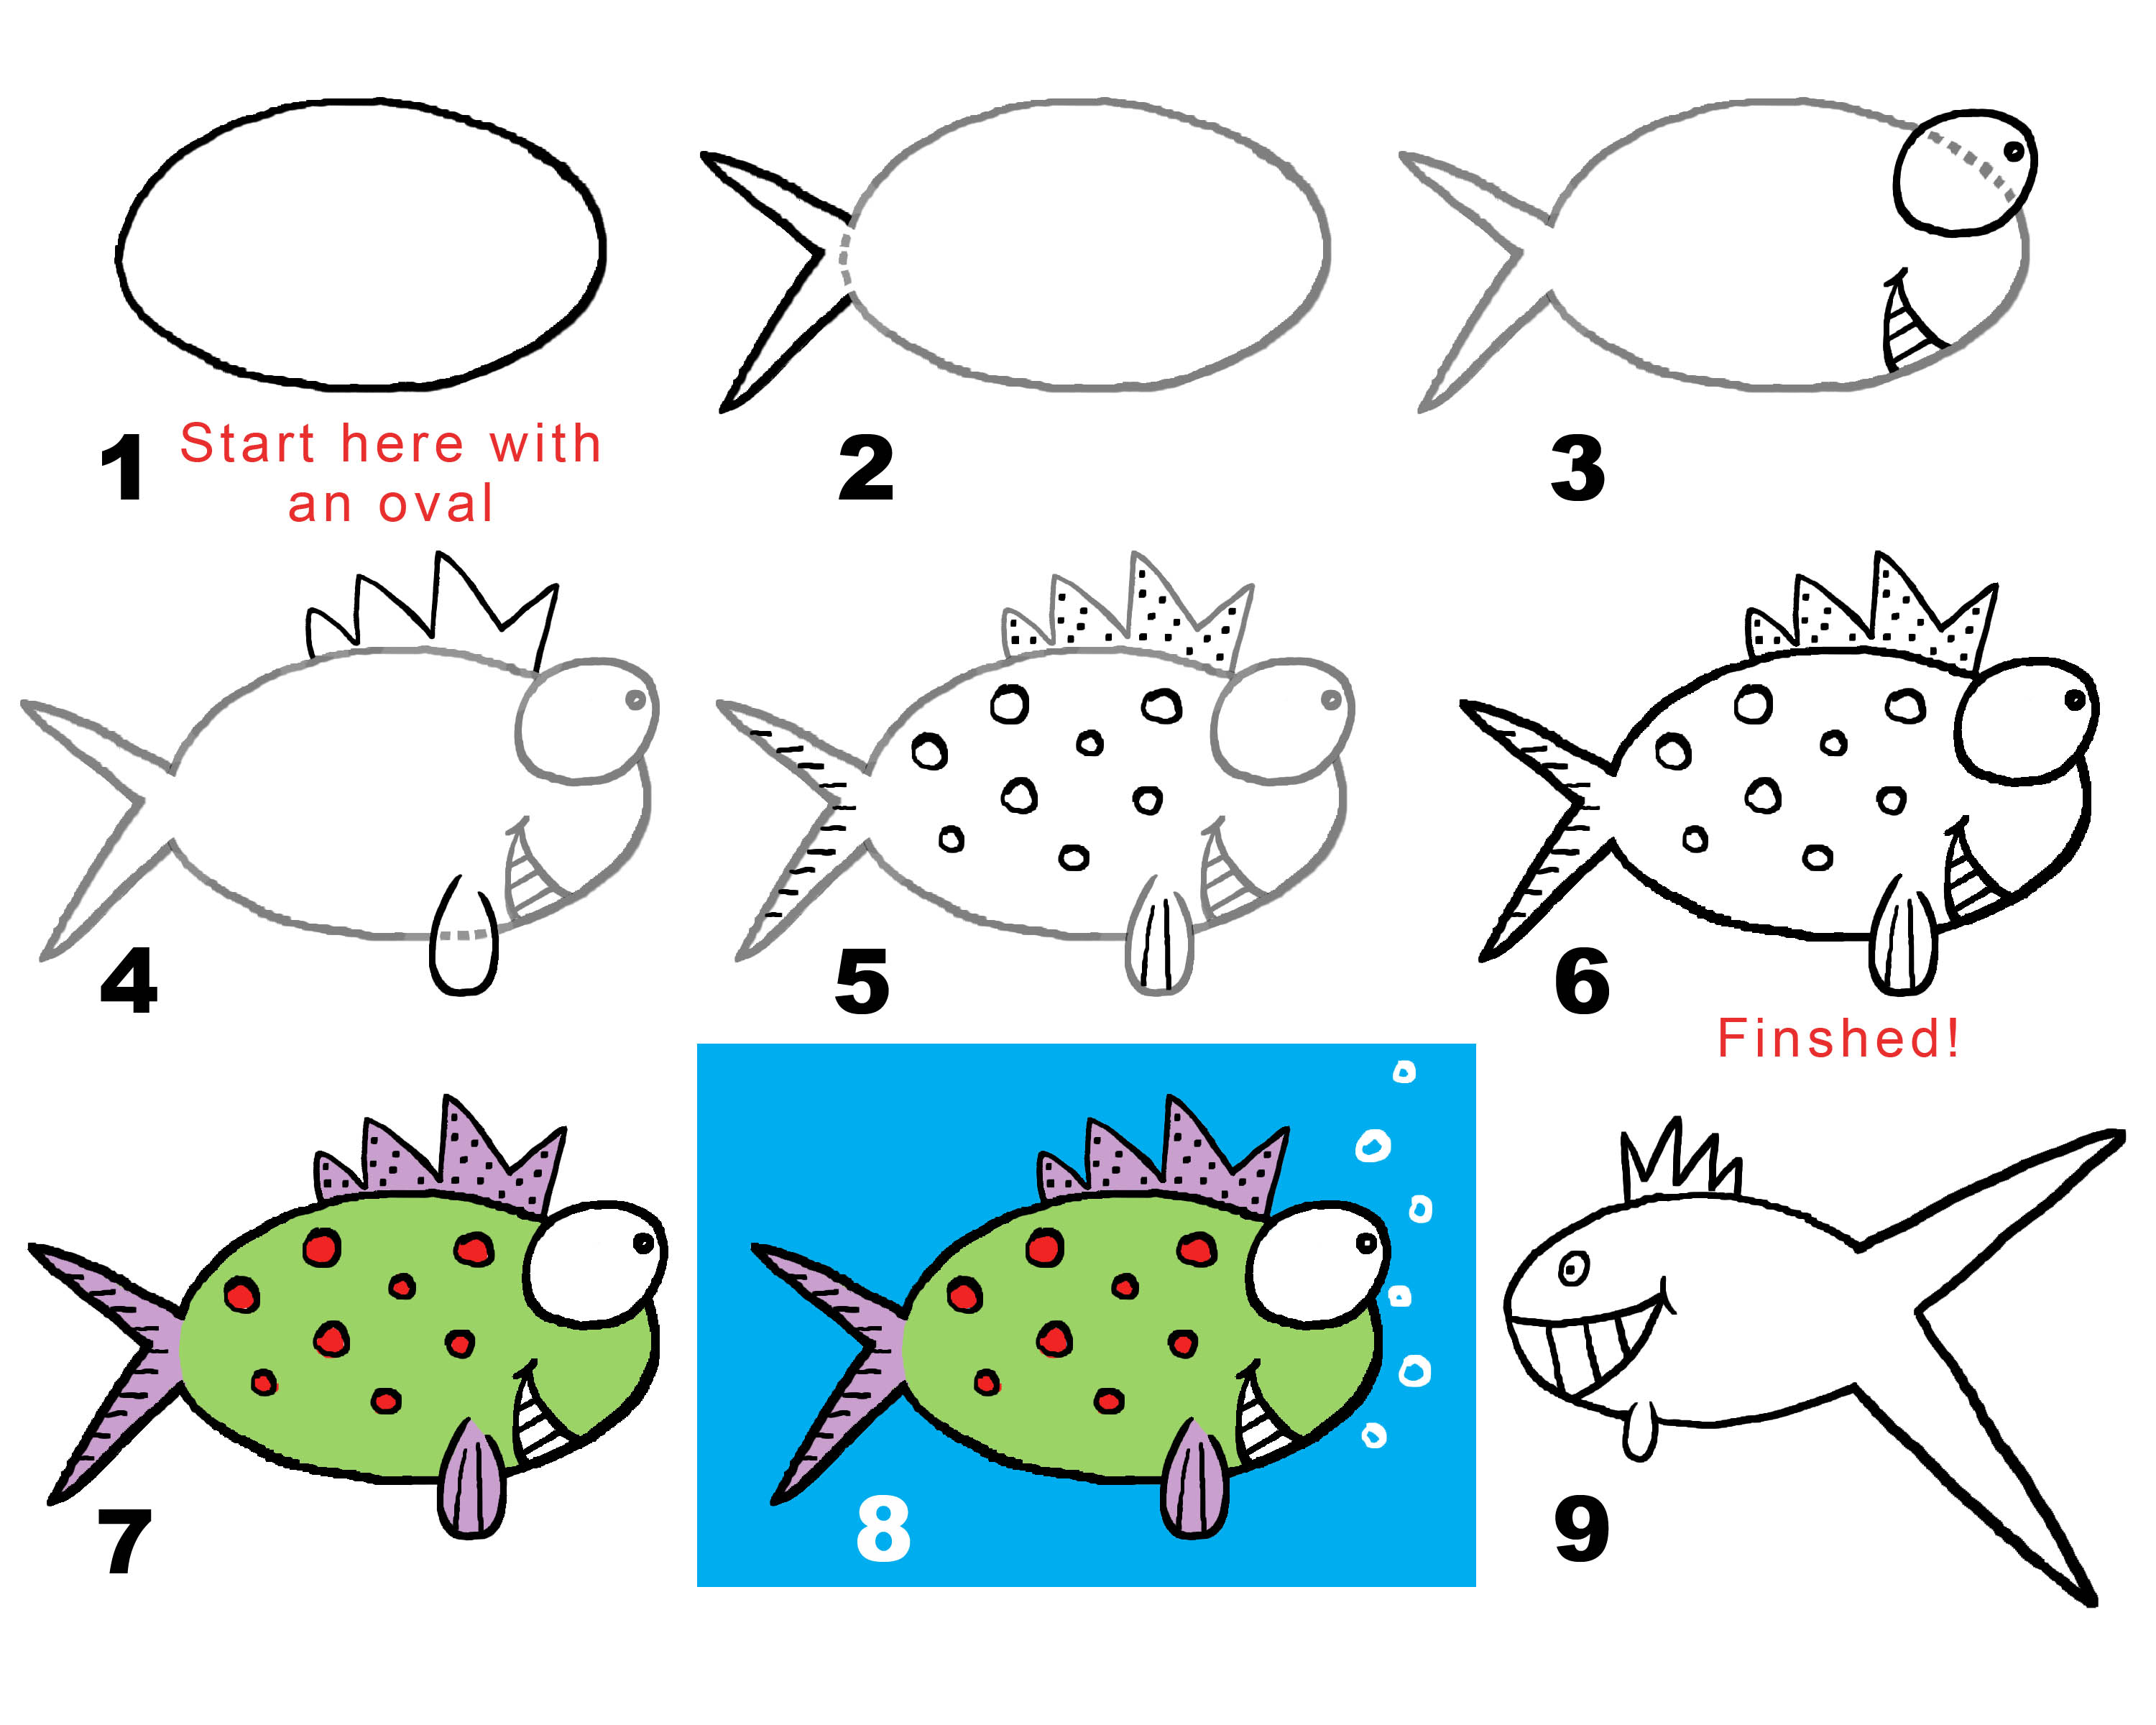 3000x2400 Fishy, Fishy! (Draw Your Own Conclusions) Draw With Rich